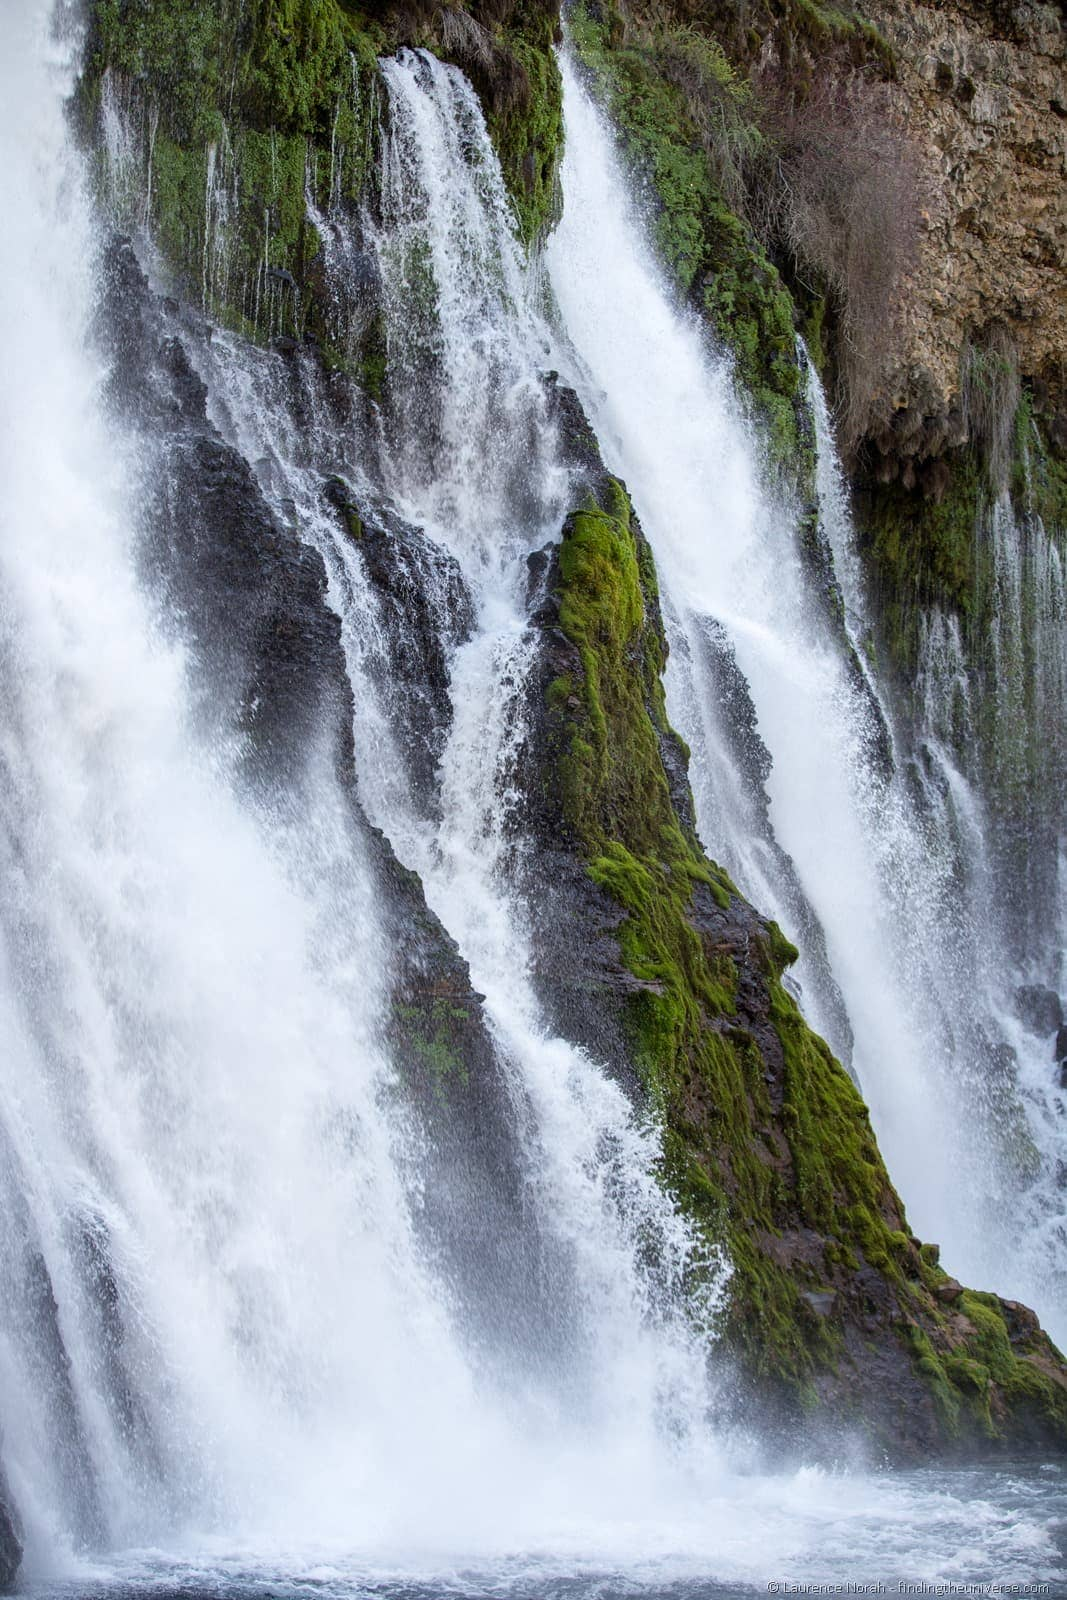 Burney falls shasta cascade california close up